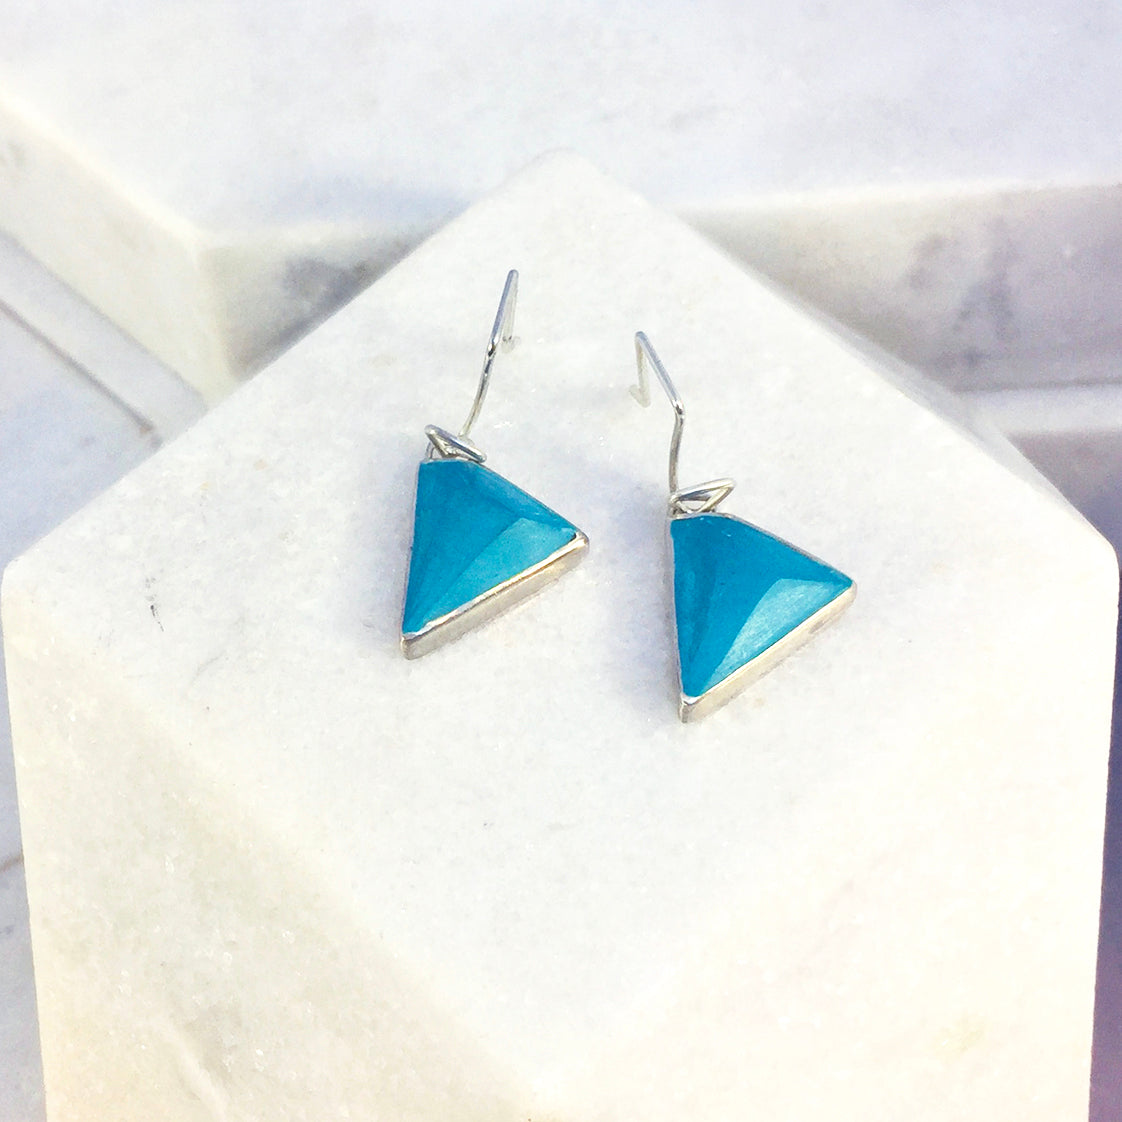 Reversible - Sterling silver blue & turquoise drop earrings